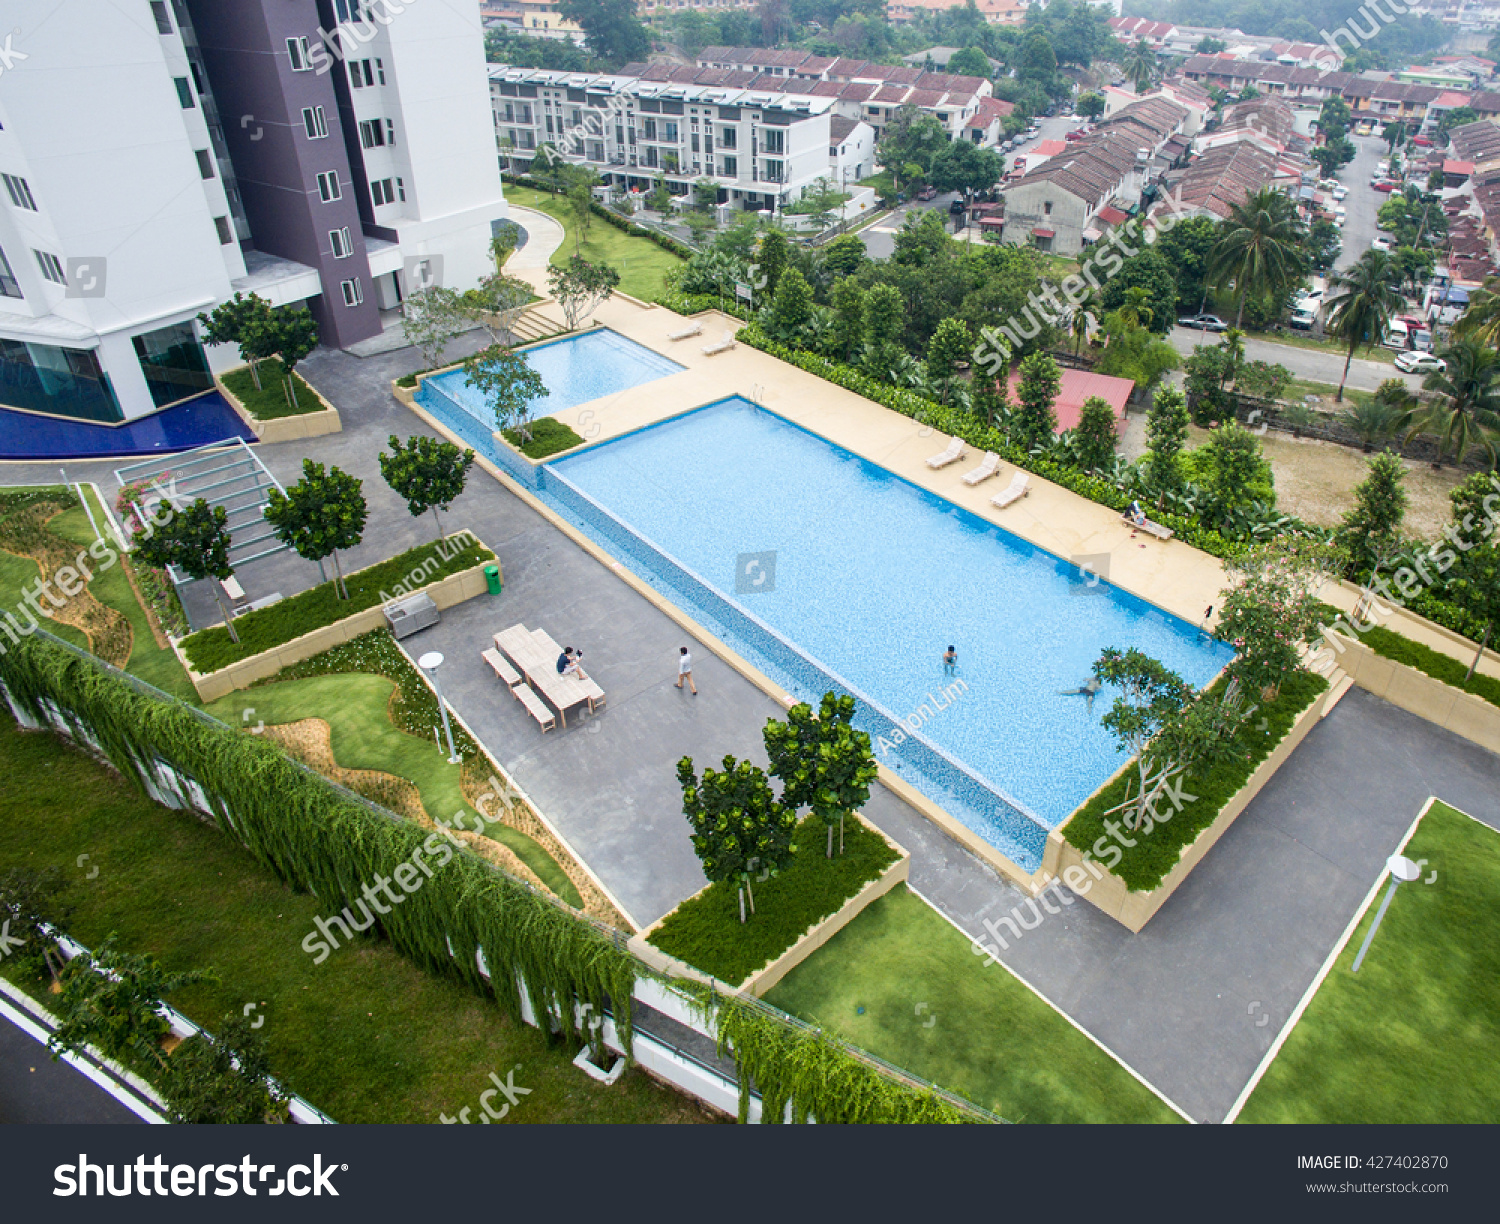 rectangle pool aerial view - Rectangle Pool Aerial View